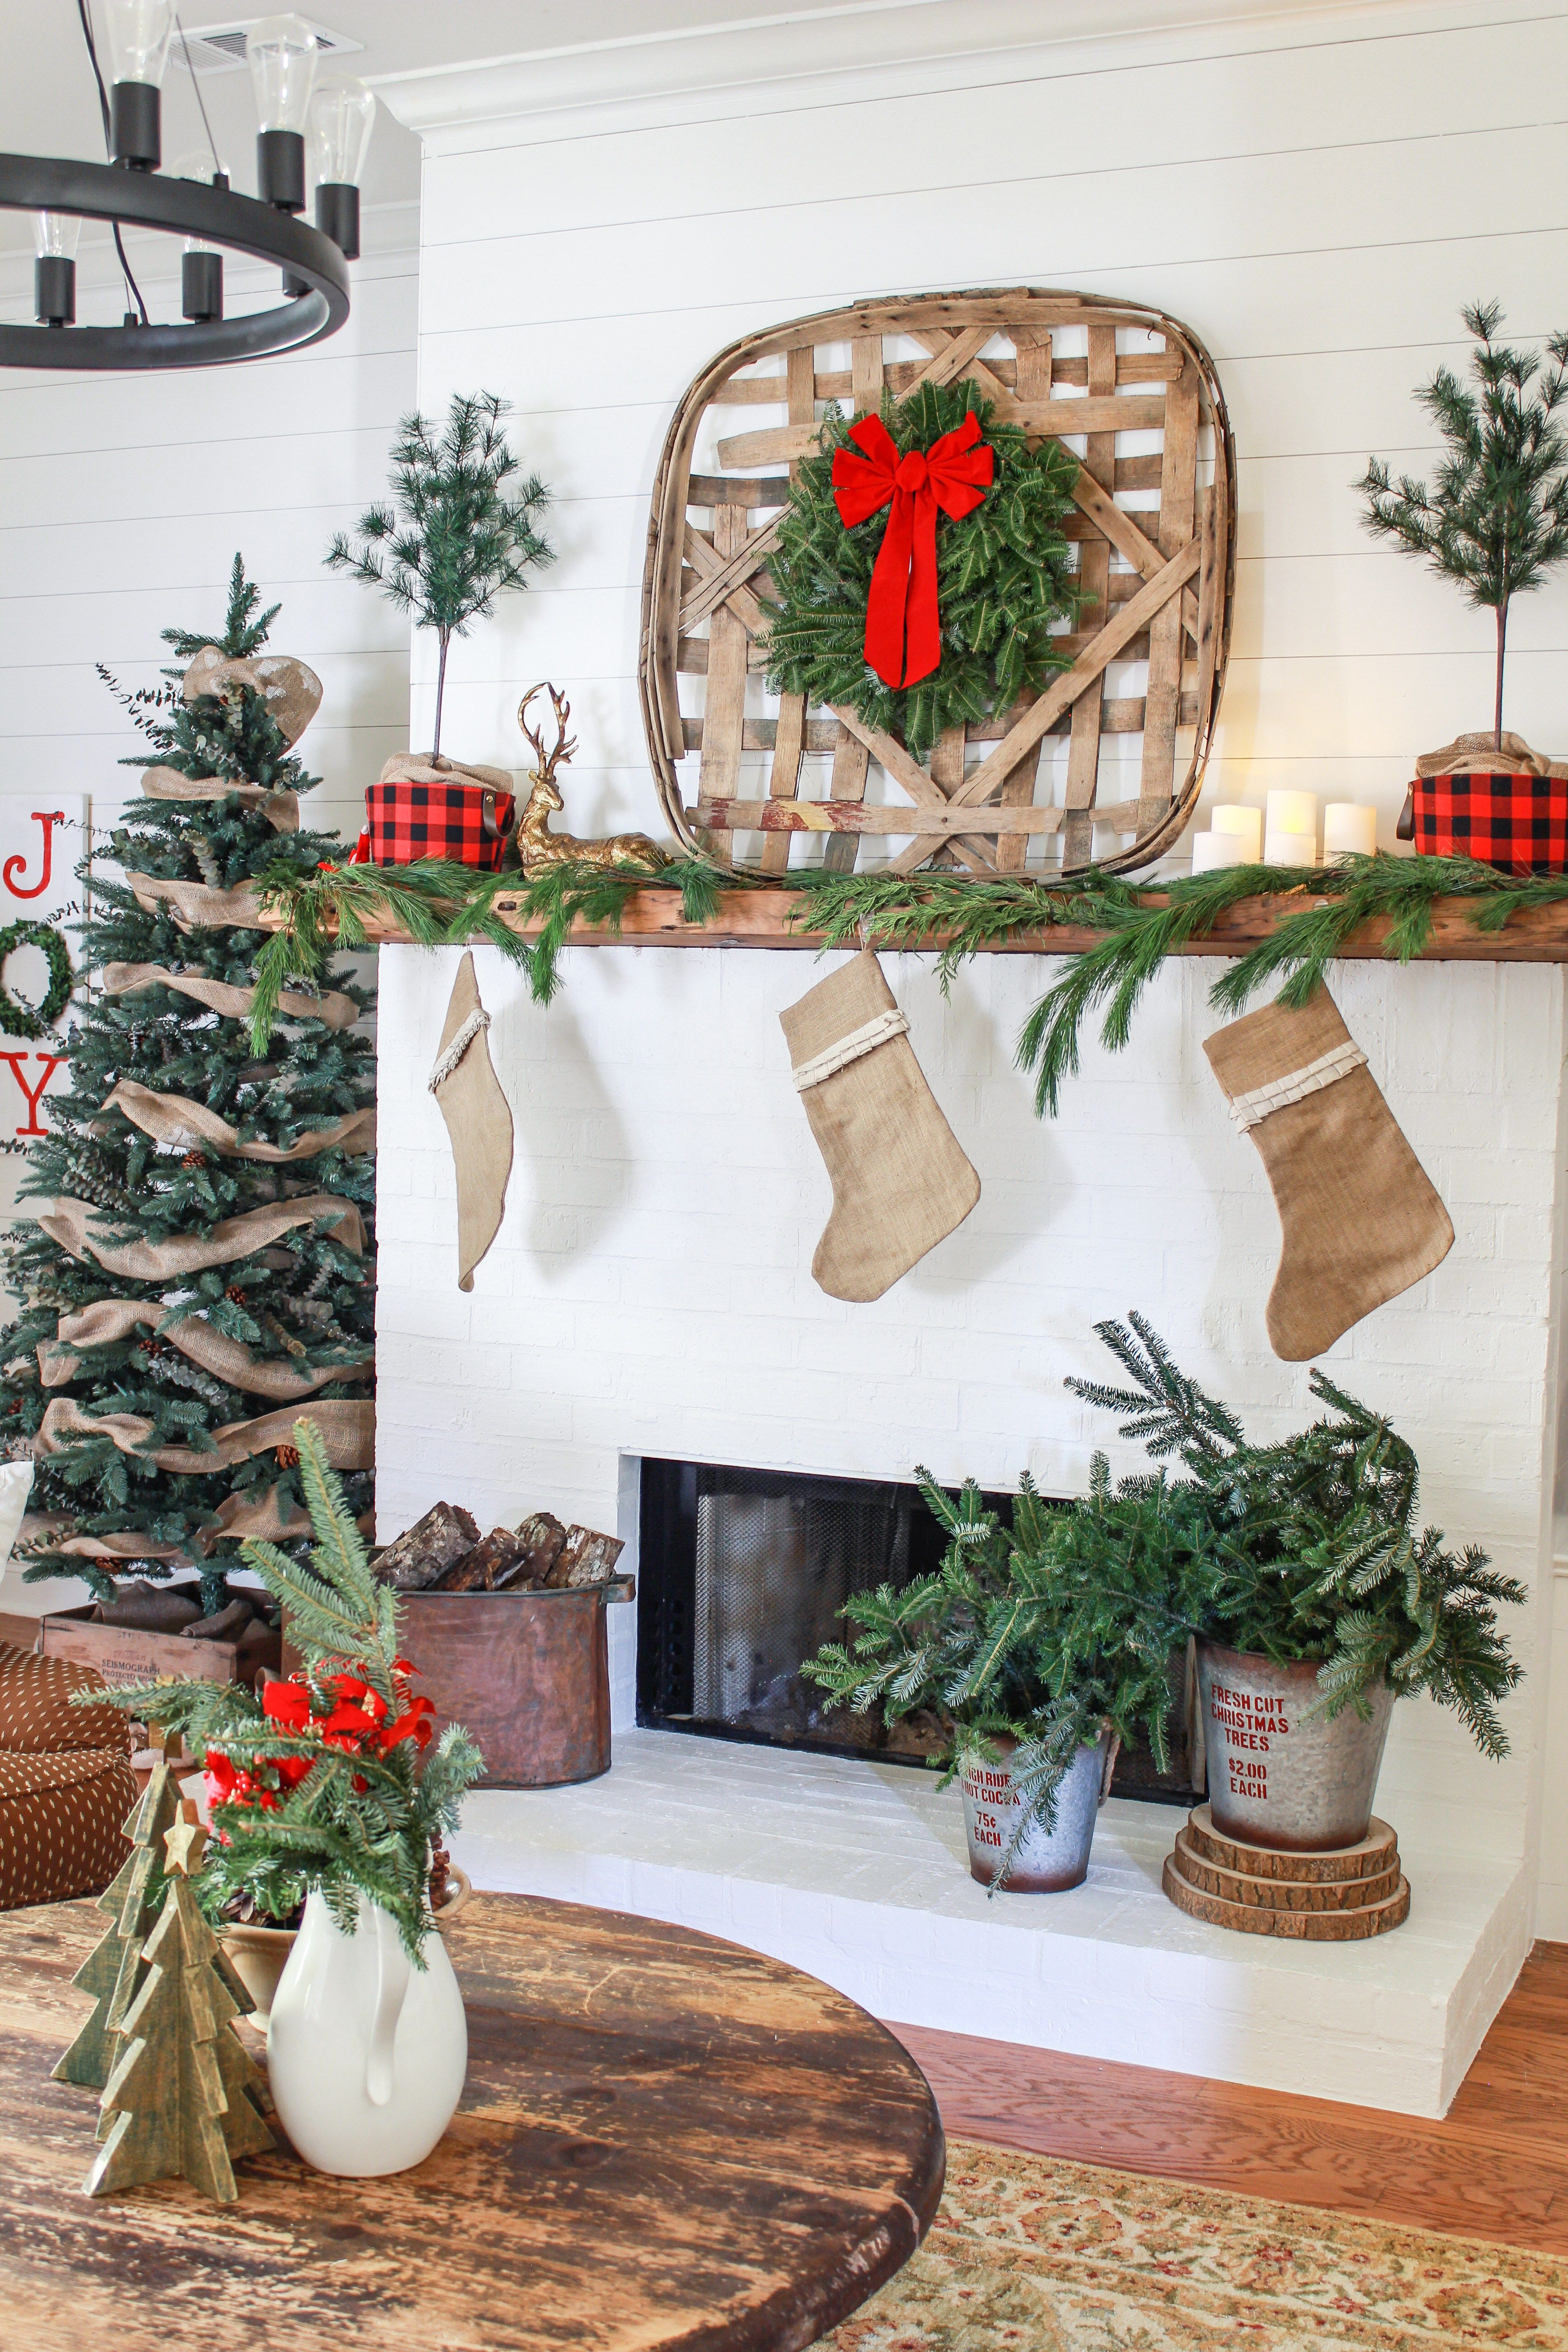 Christmas Home Tour 2017 | Holidays, Christmas decor and Repurposing